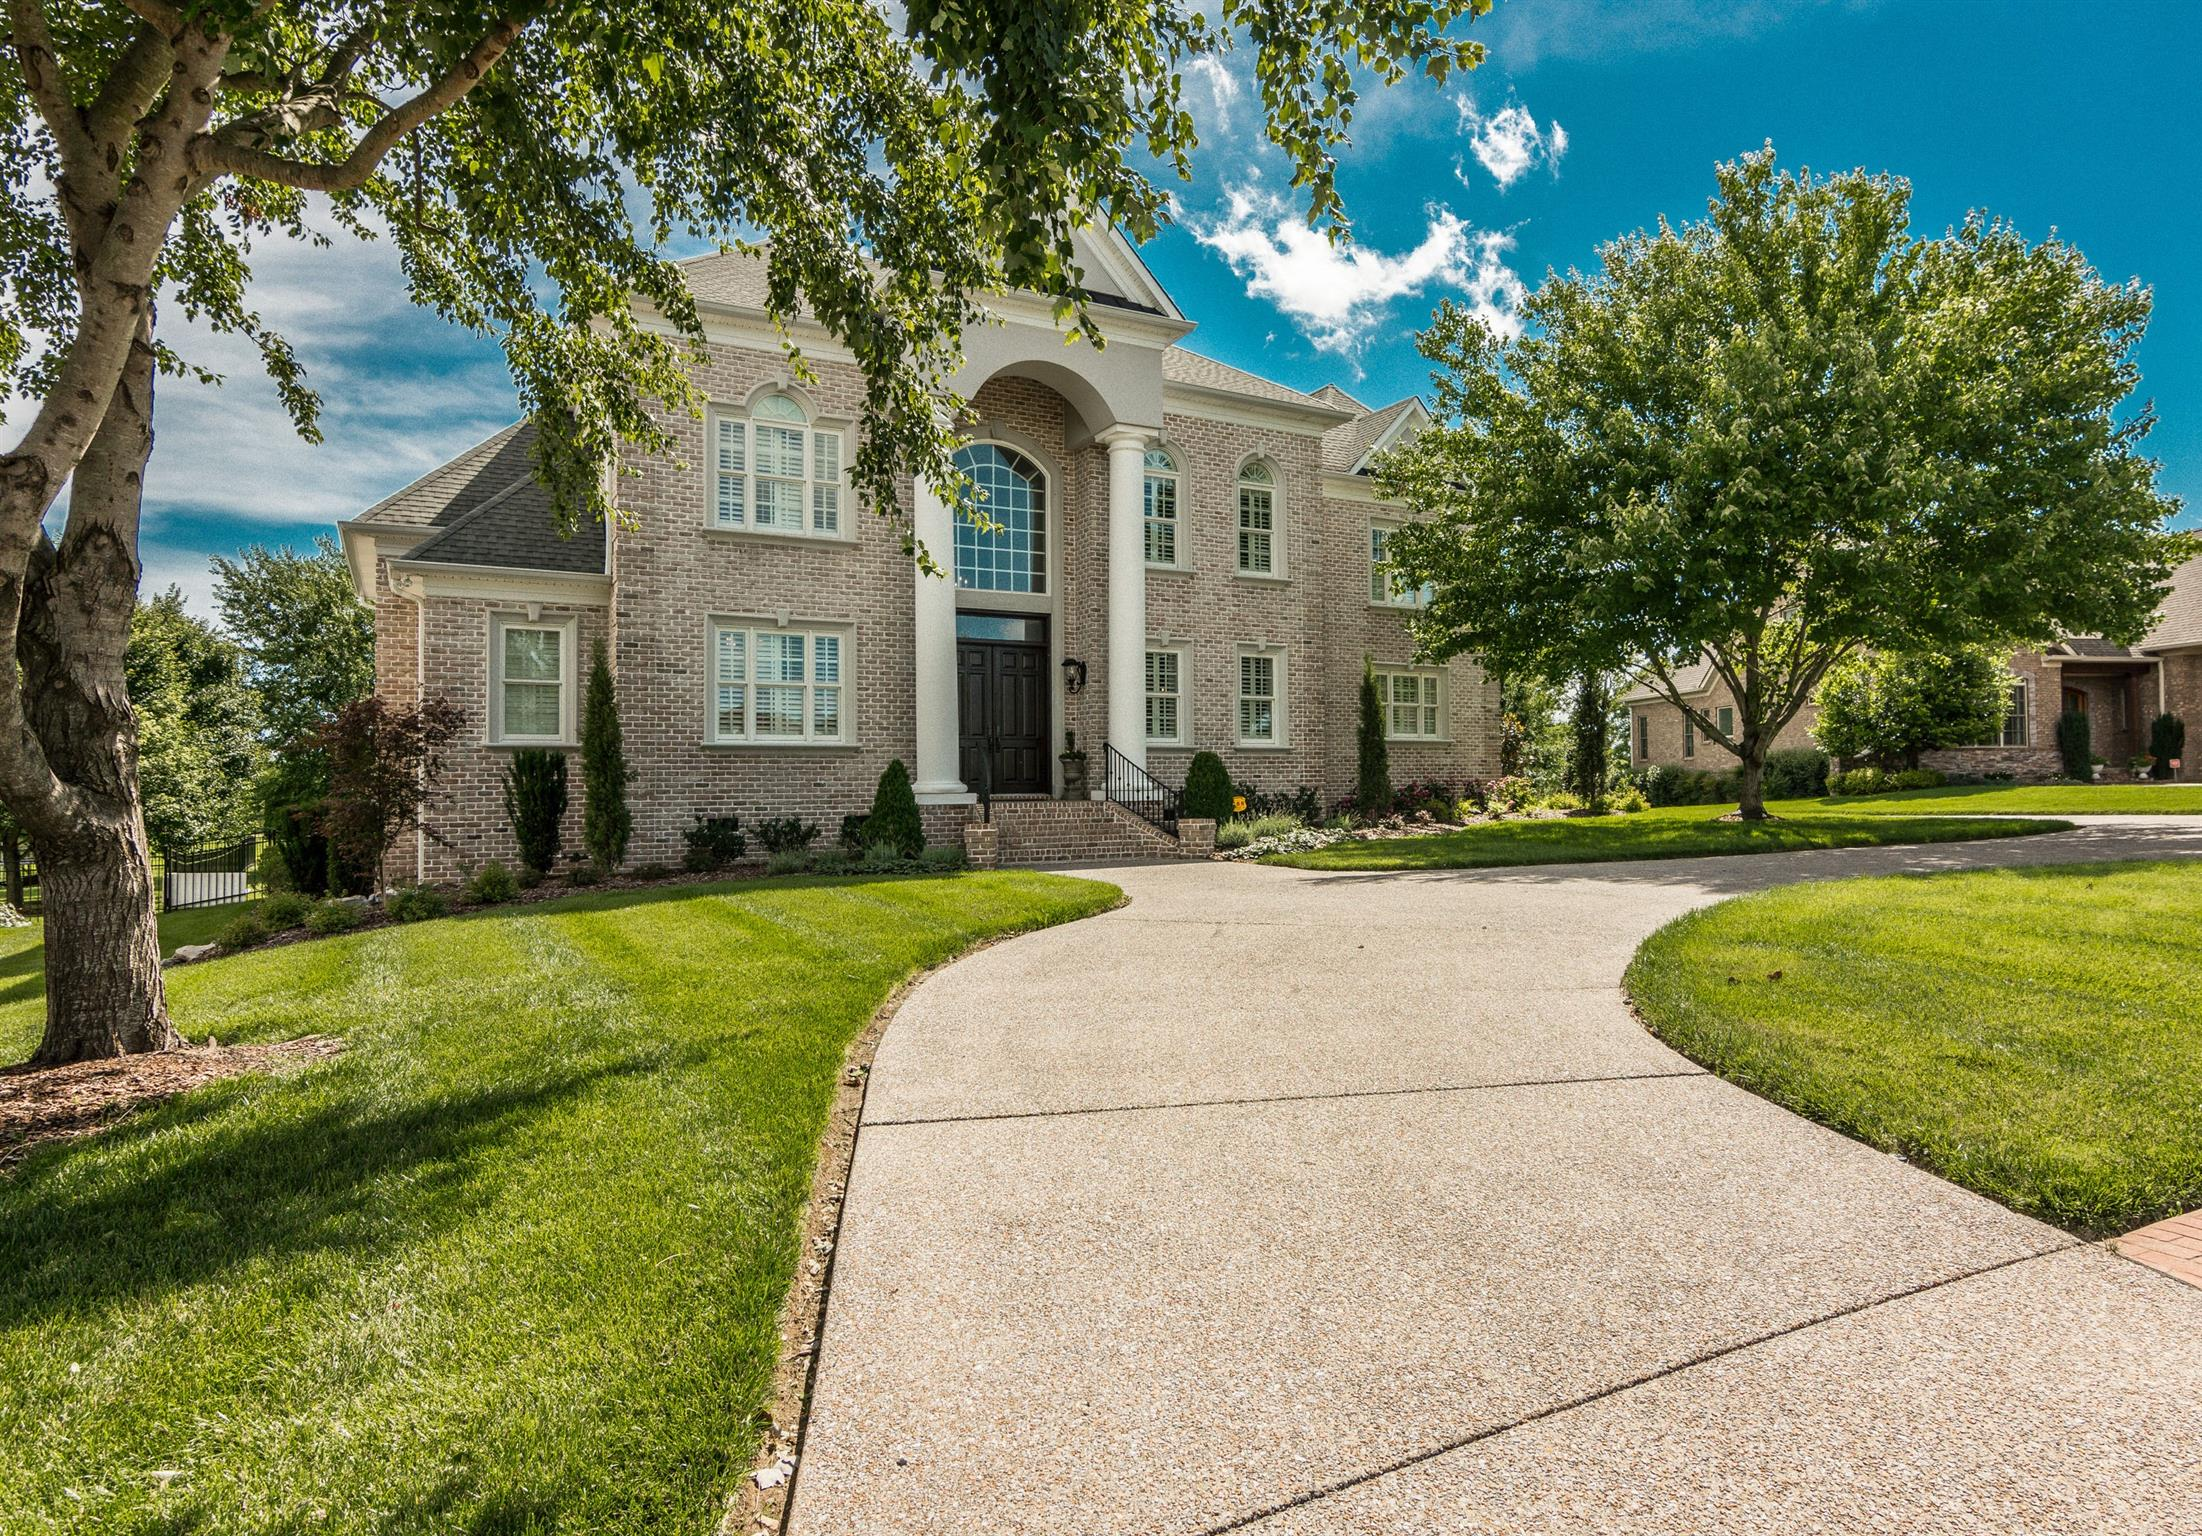 1109 Livingfield Ct, Gallatin, Tennessee